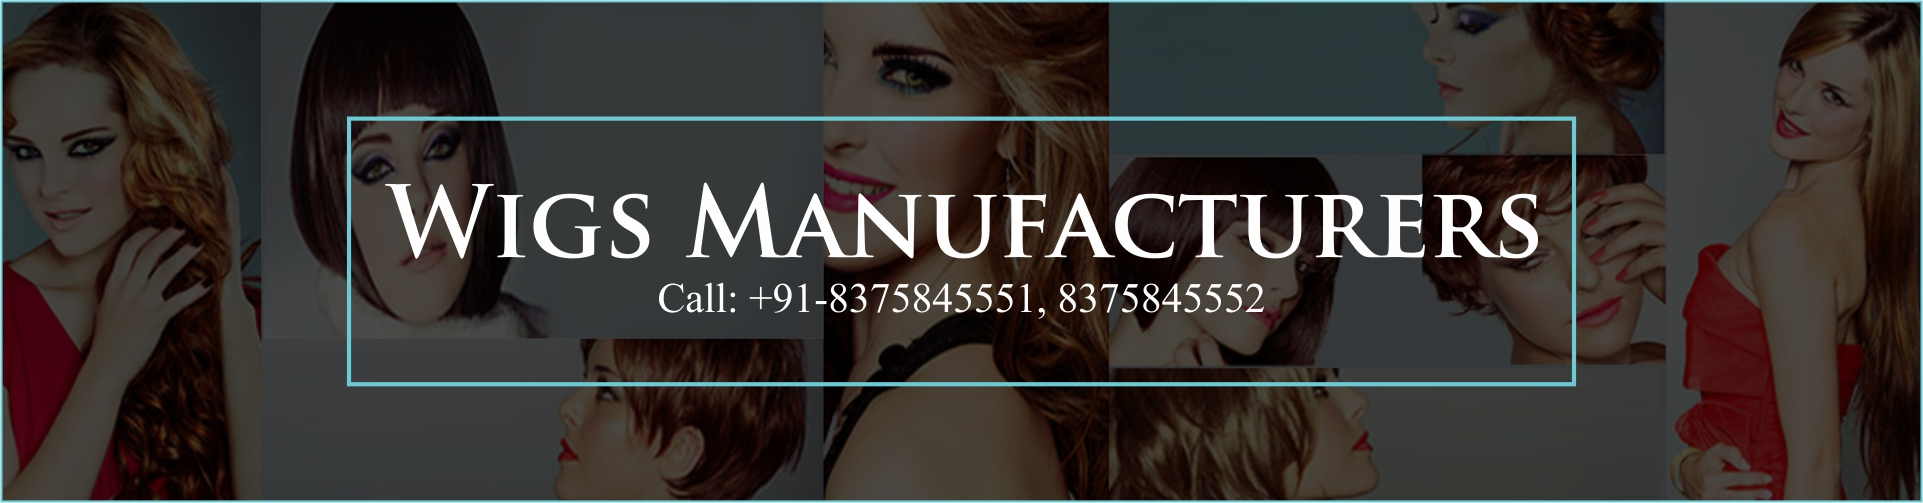 Wigs Manufacturers in Delhi - PHC Hair Clinic